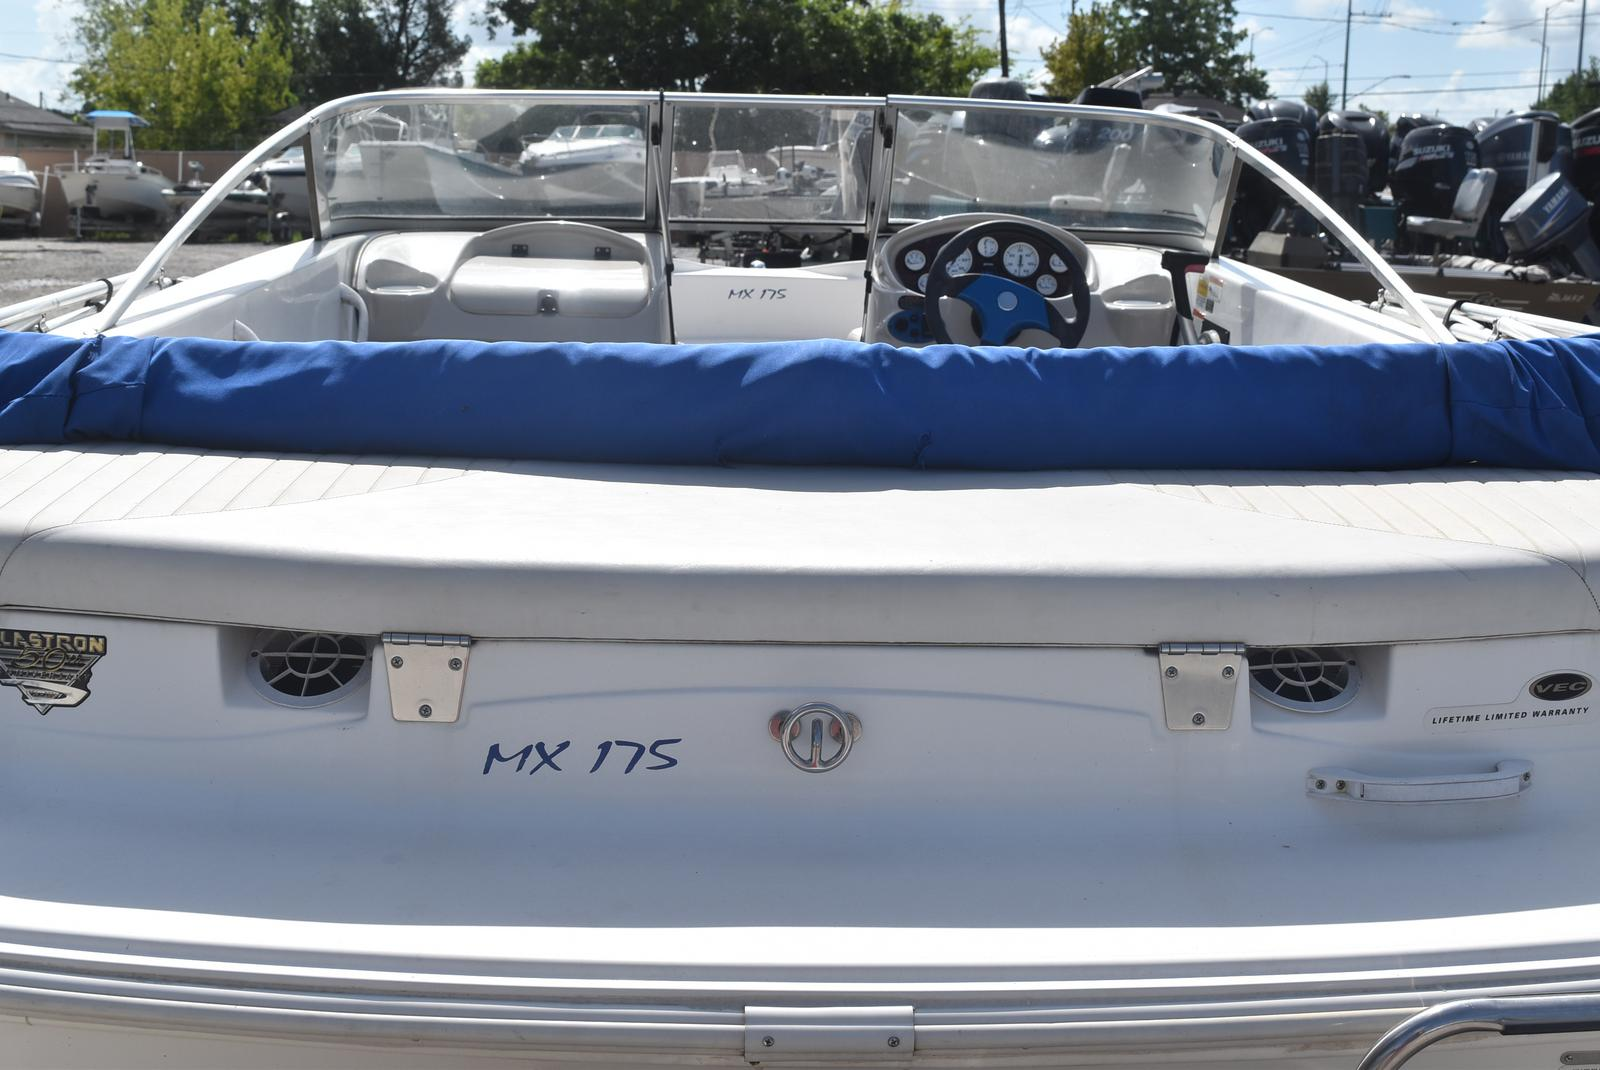 2006 Glastron boat for sale, model of the boat is MX 175 & Image # 4 of 21